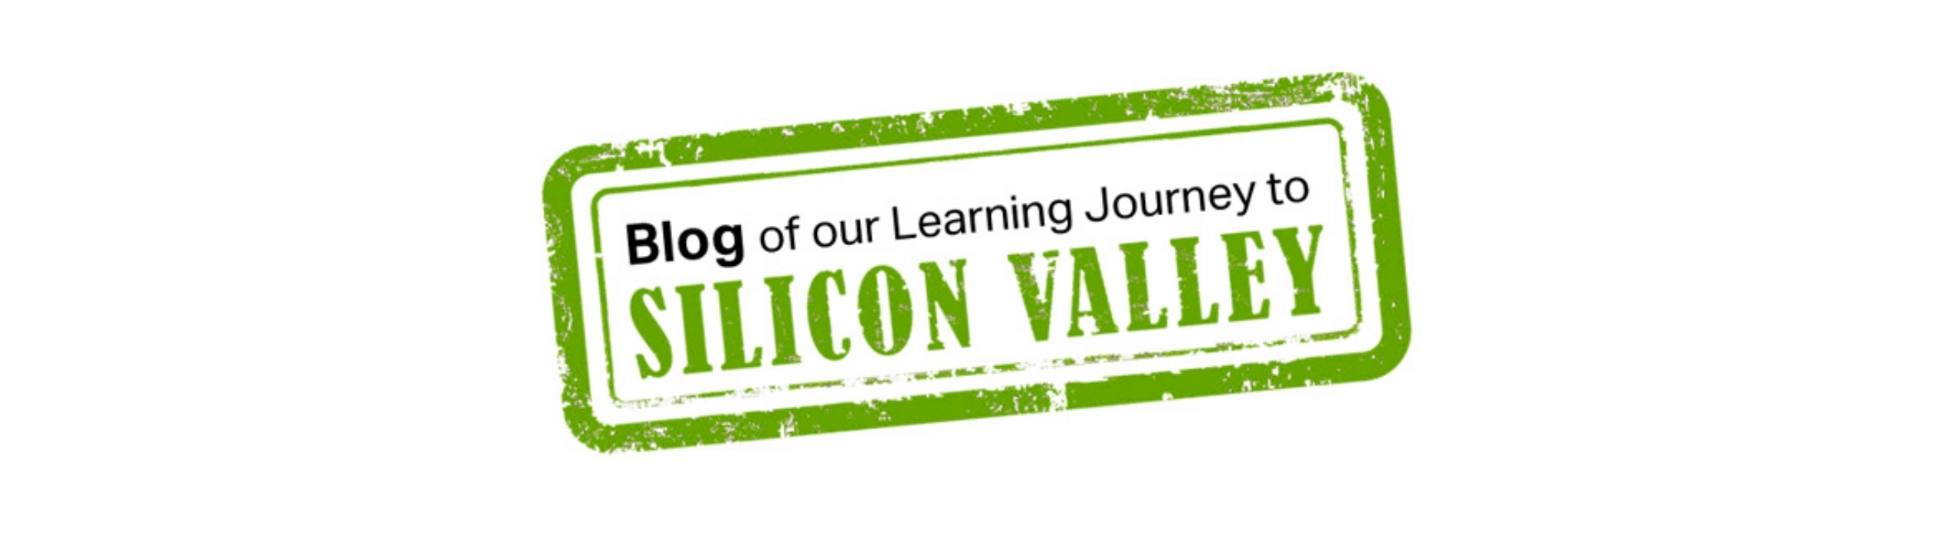 insight_blog_of_silicon_valley_header